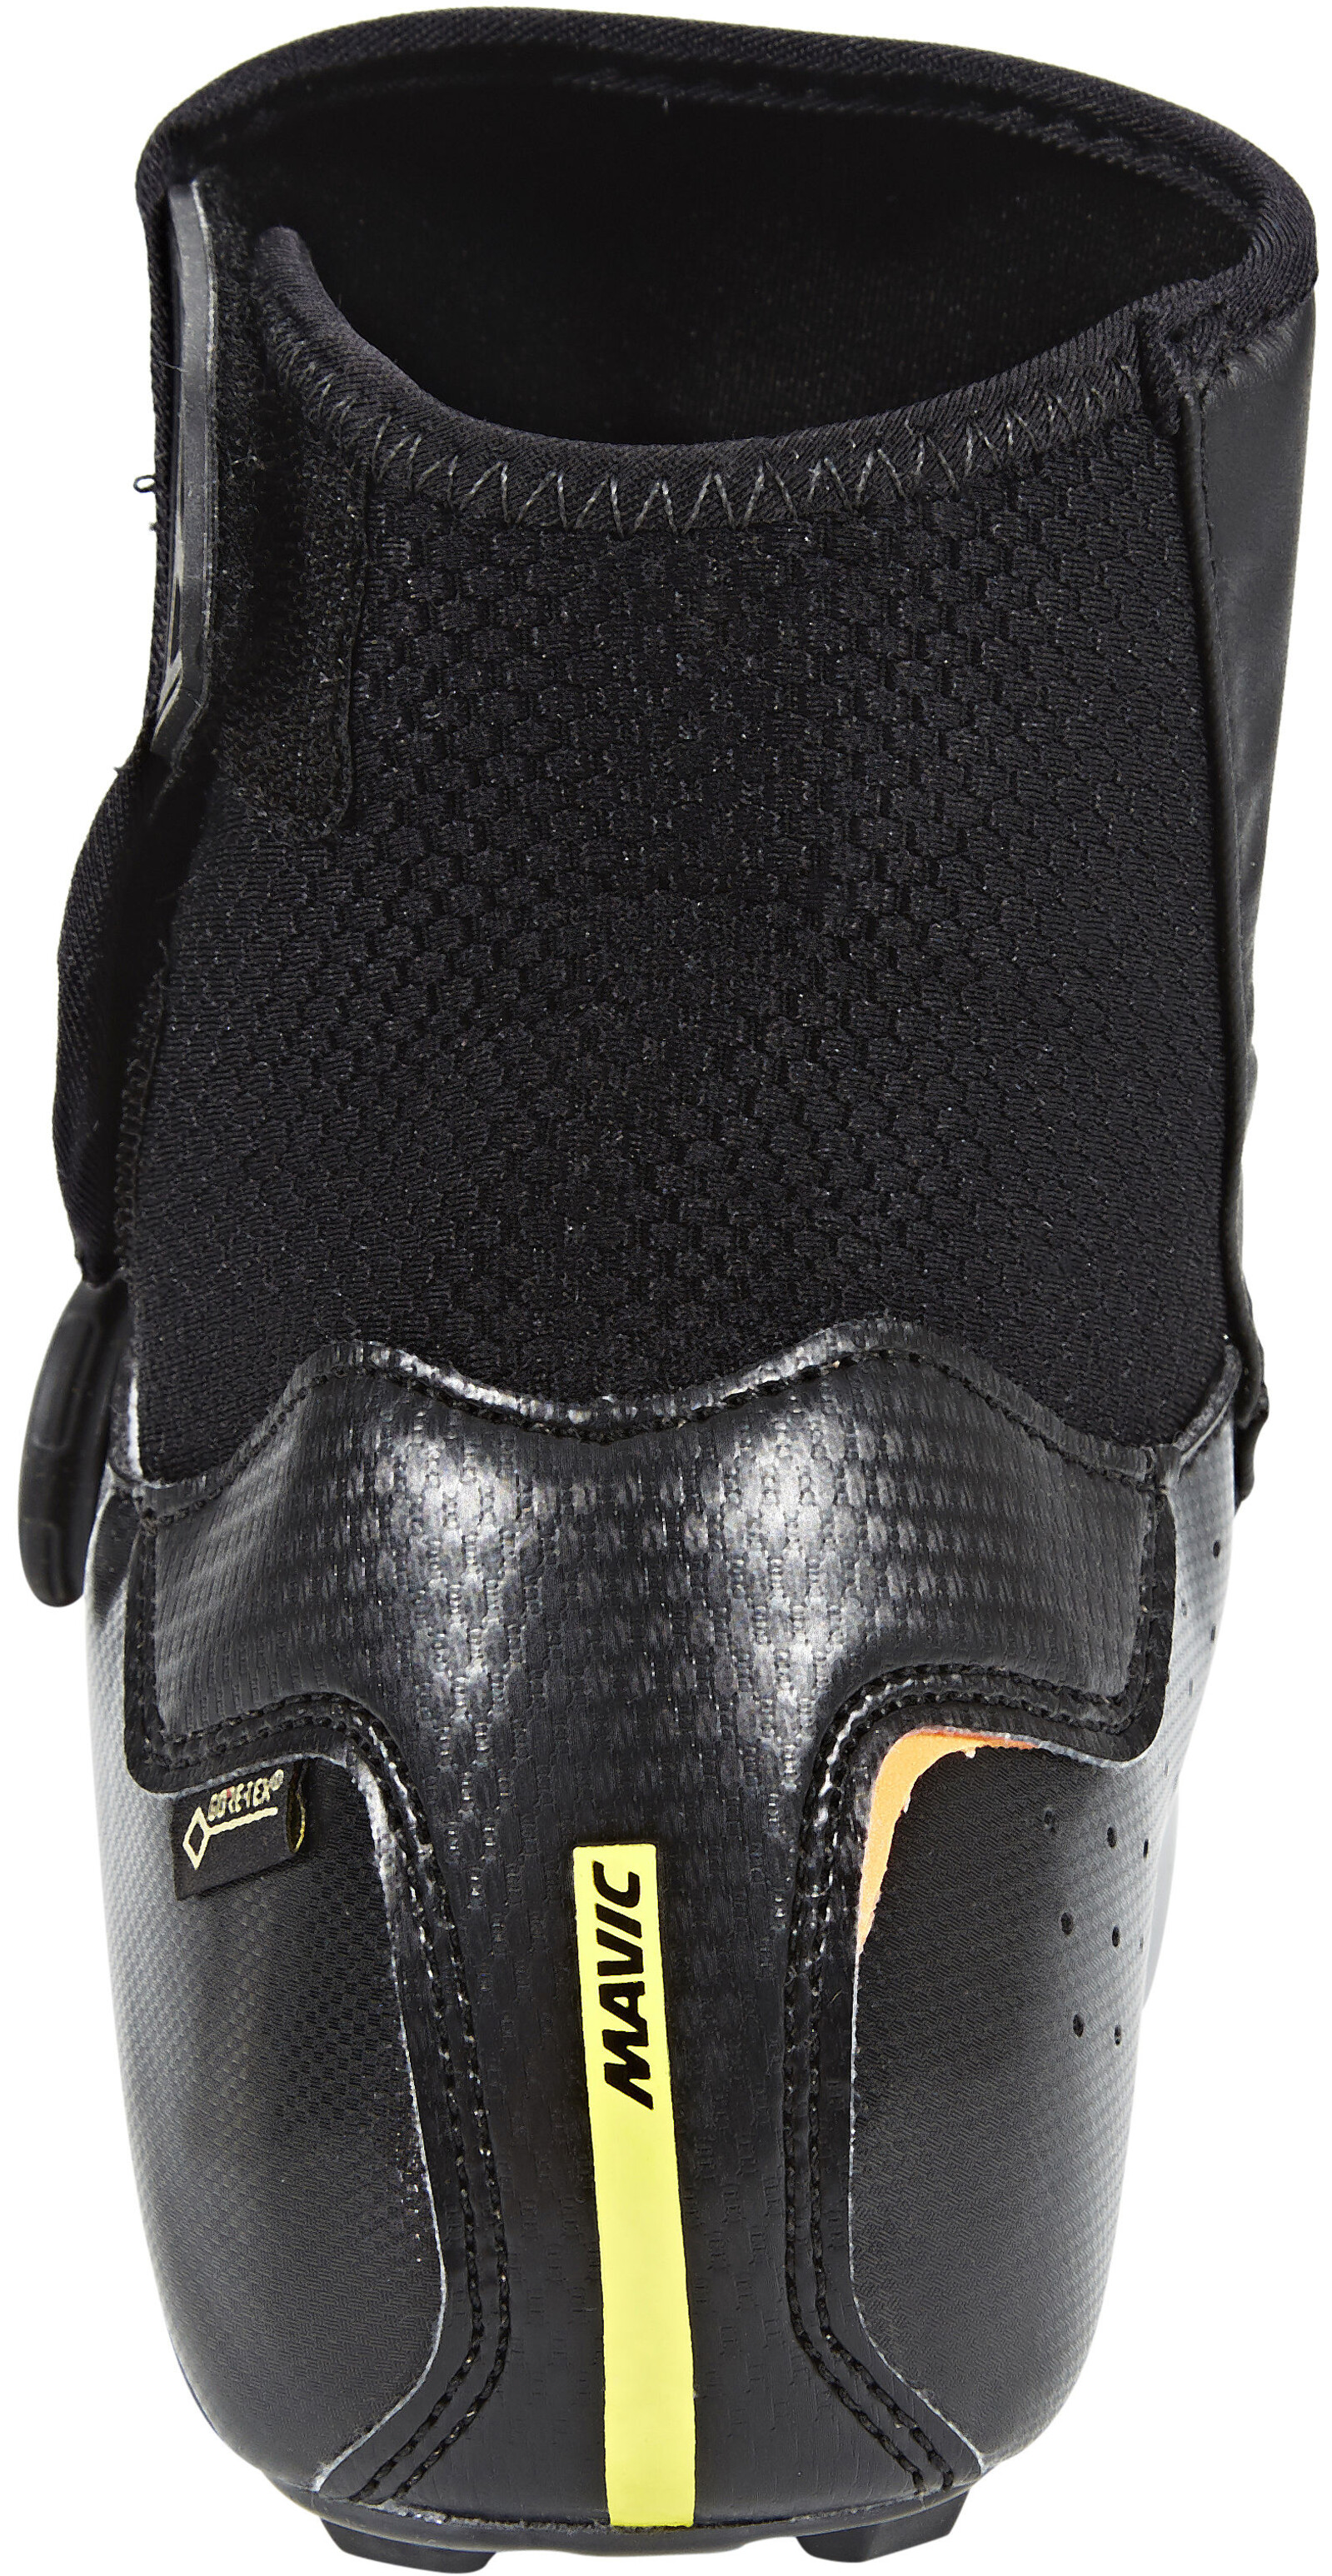 Mavic Ksyrium Pro Thermo Road Shoe Review